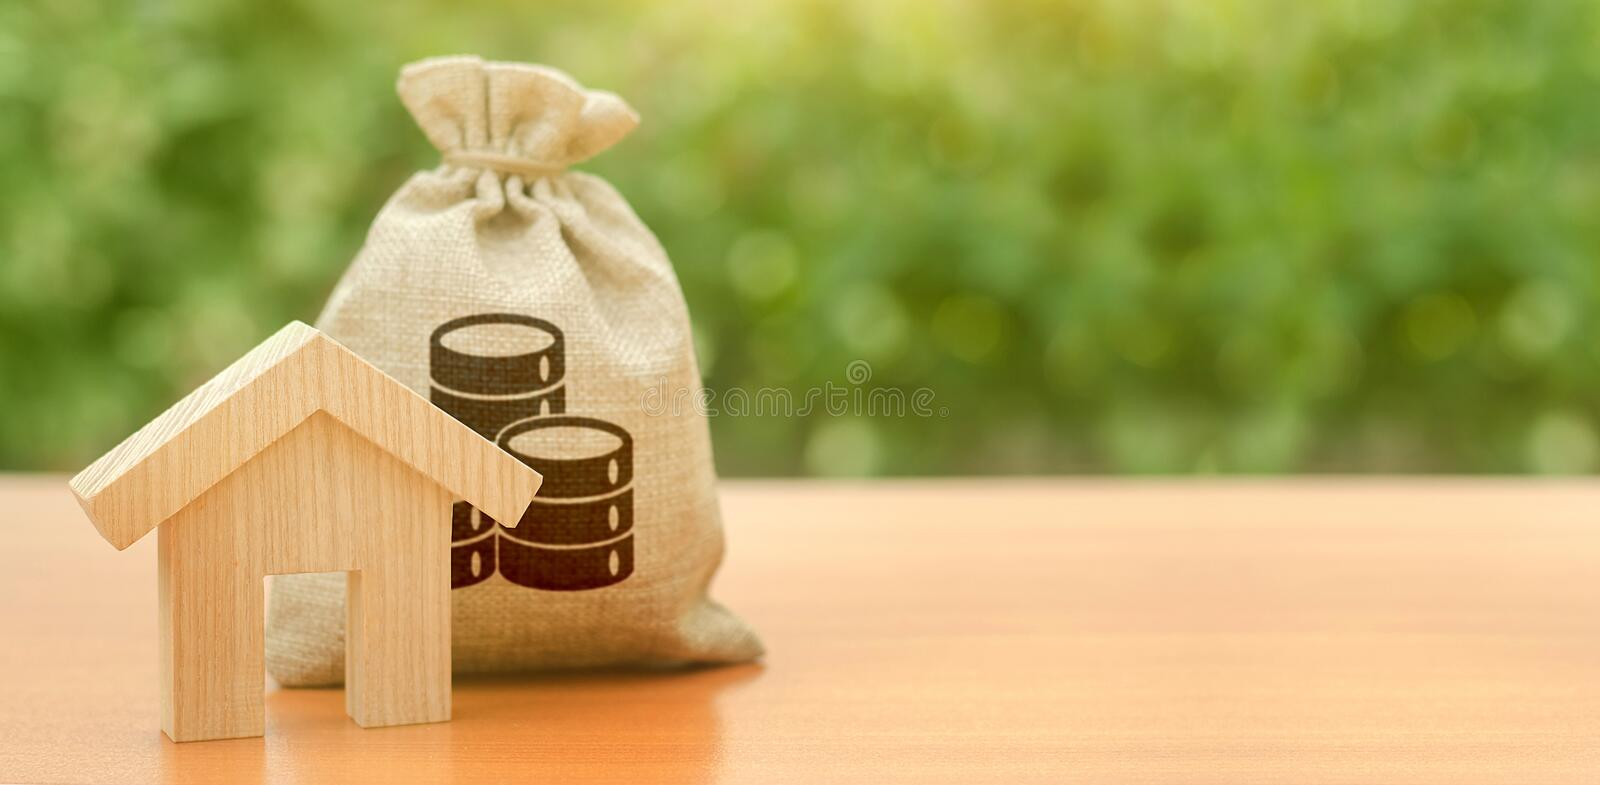 Wooden house figurine and a money bag. Family budget, control and reduction of expenses. subsidized funds. Mortgage loan stock photography